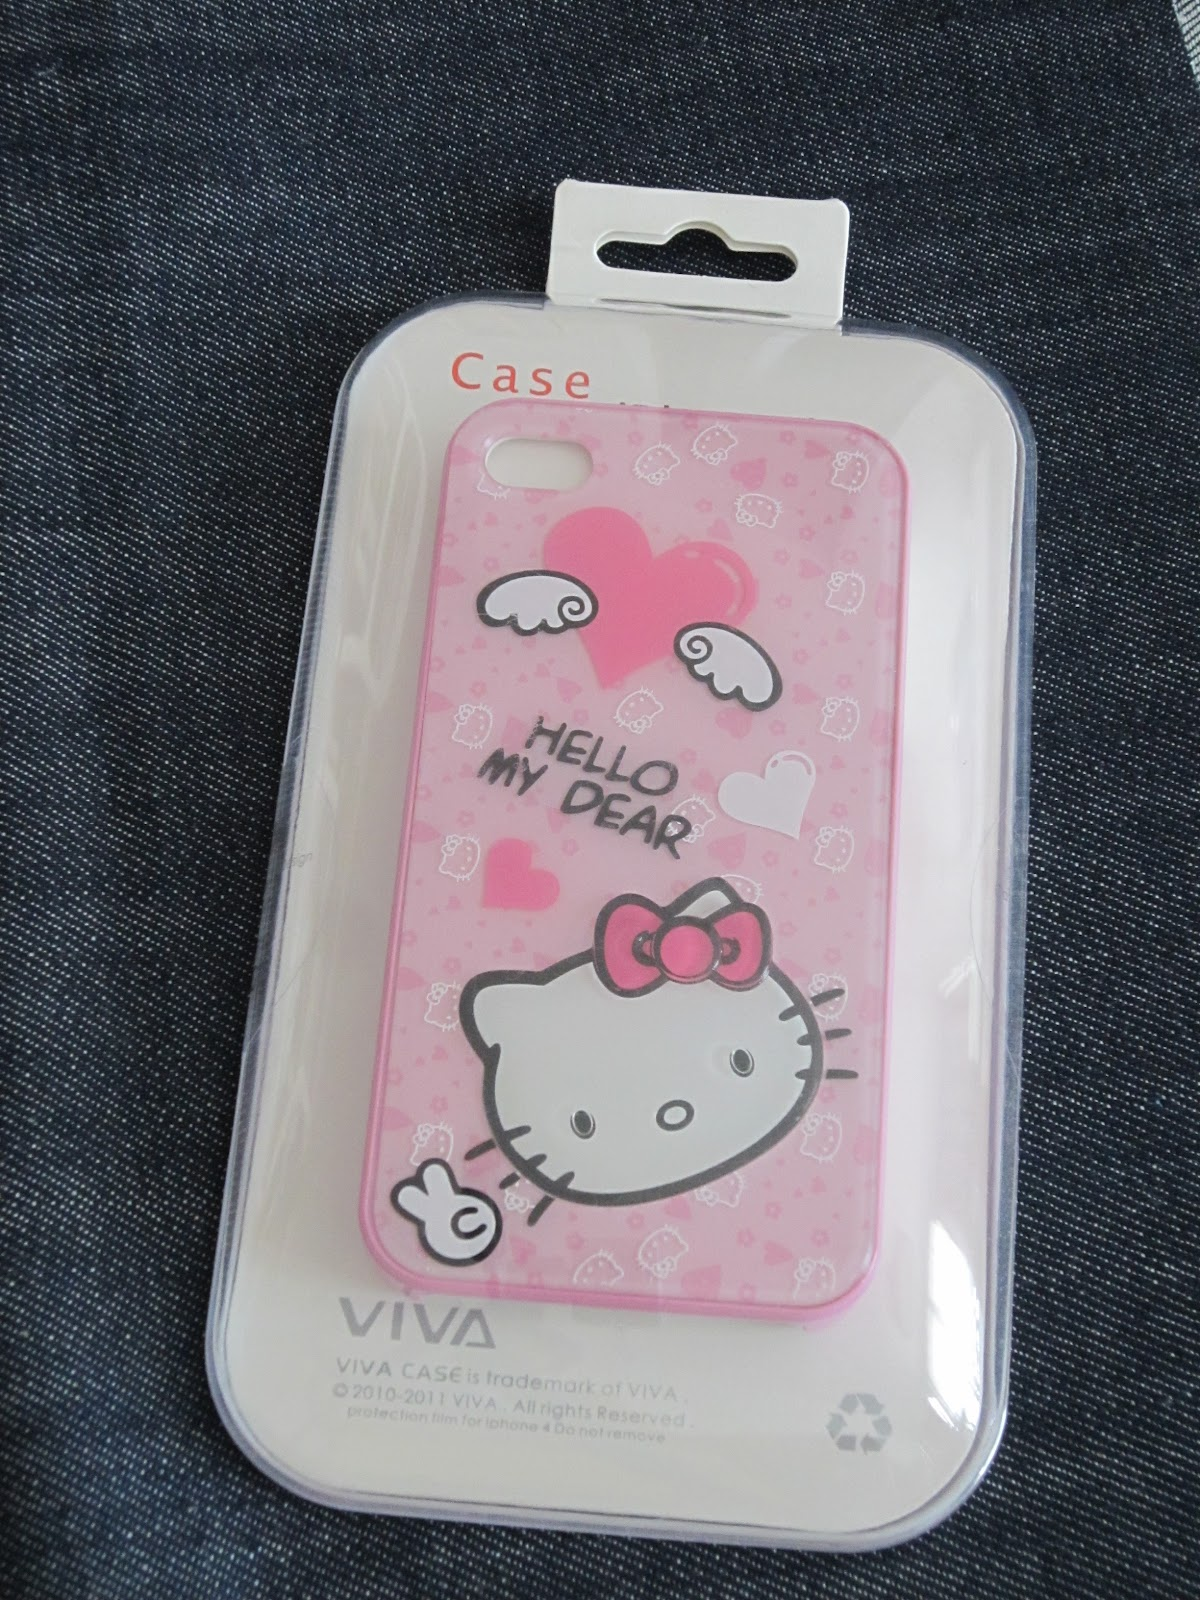 Displaying 17u0026gt; Images For - Iphone 4 Cases Hello Kitty Nerd...